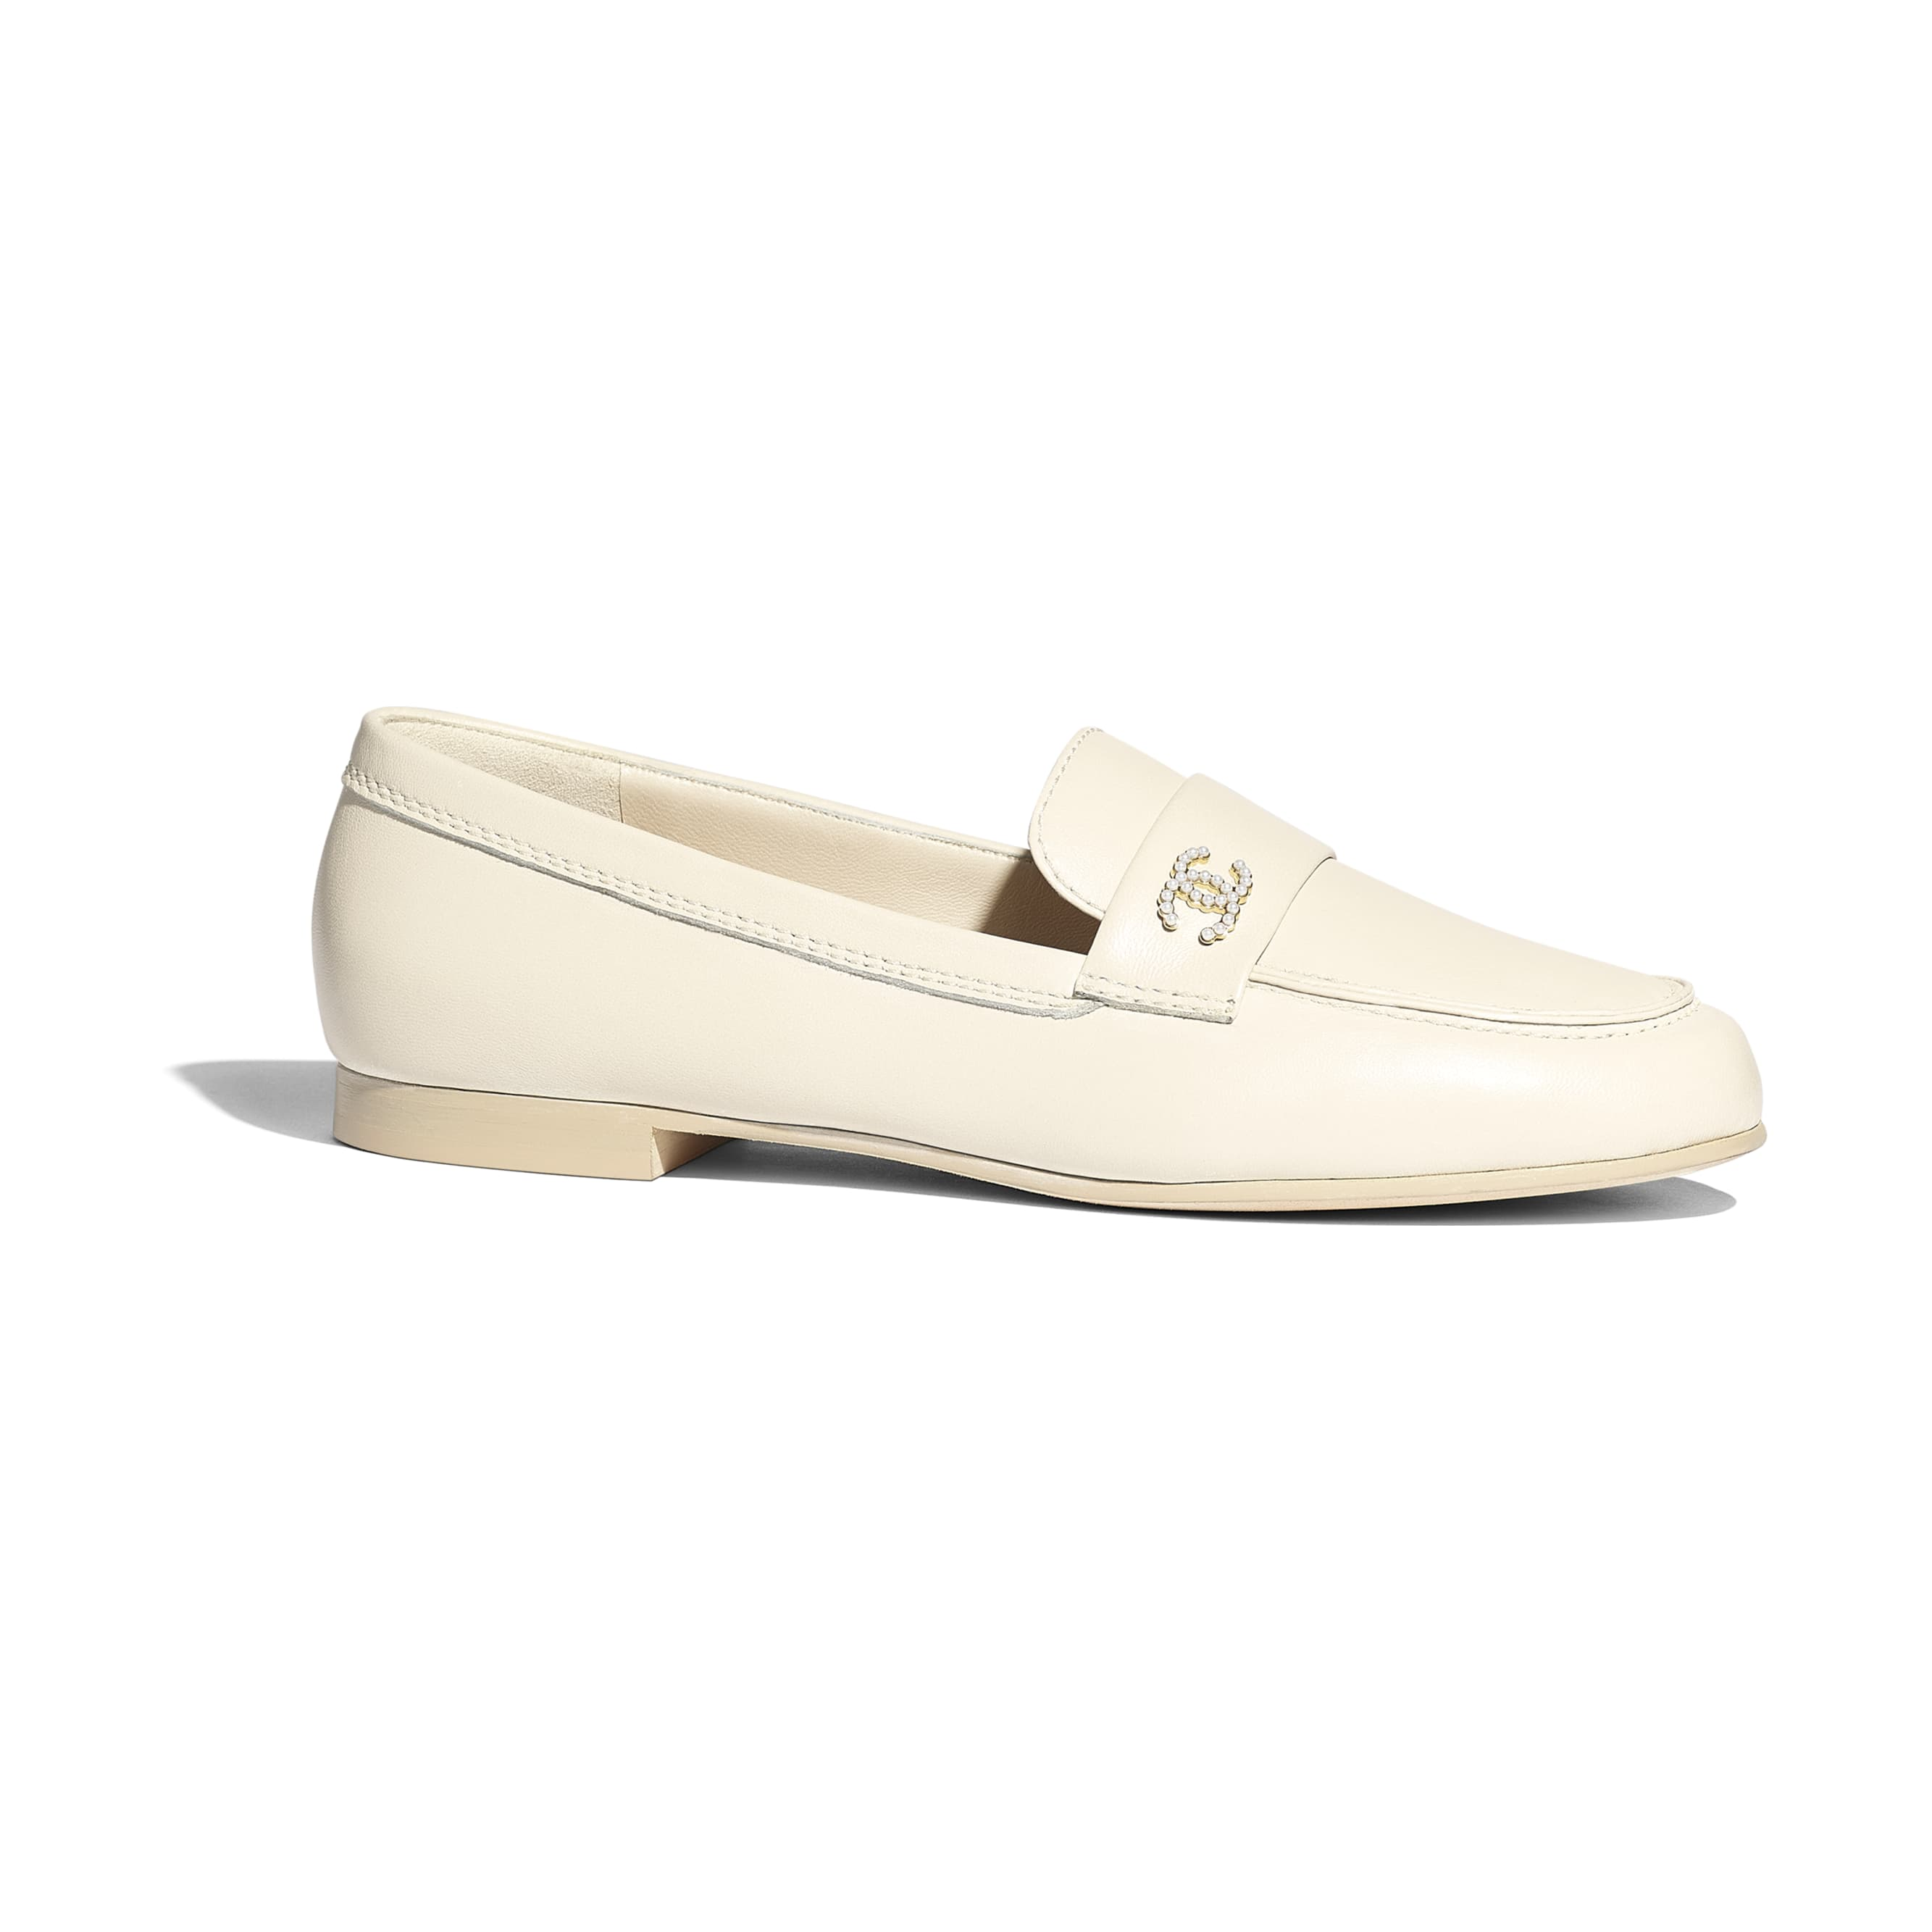 Loafers - Light Beige - Lambskin - CHANEL - Default view - see standard sized version